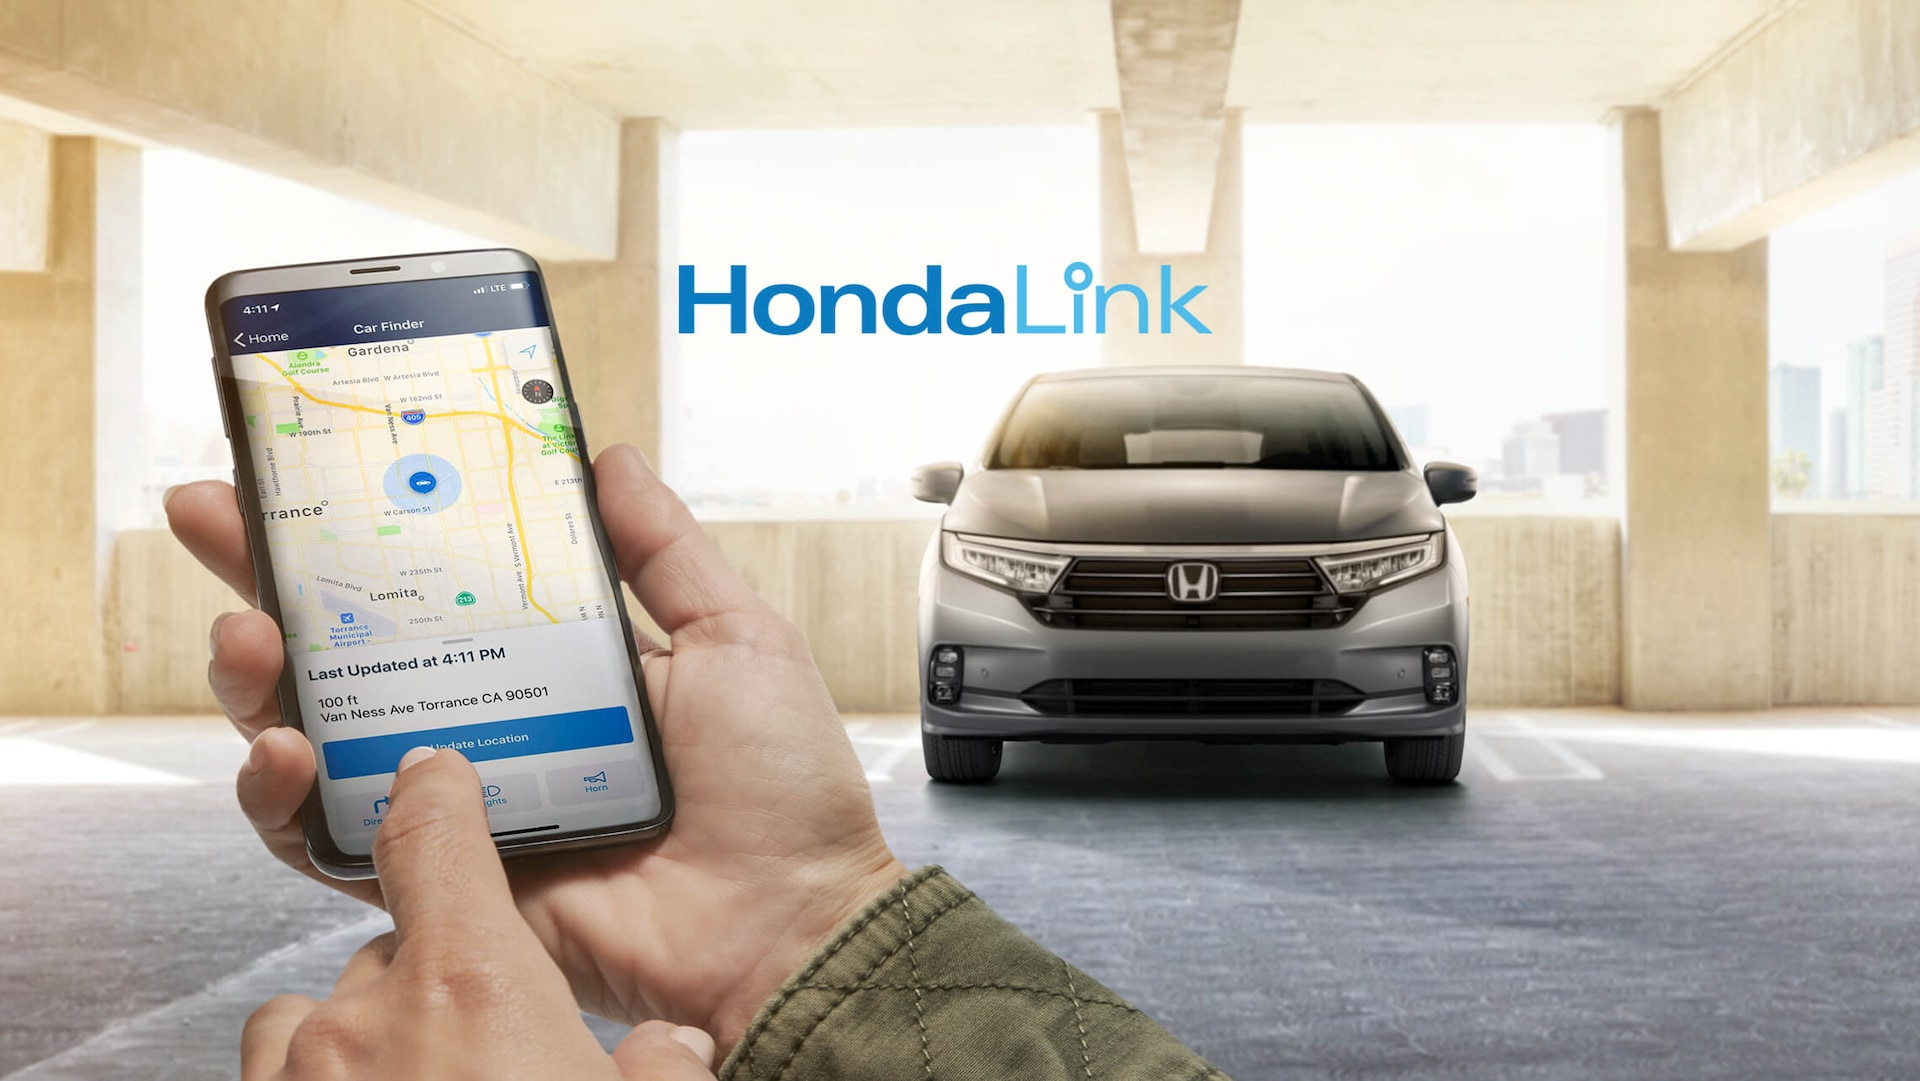 Close-up of a hand holding a smartphone, showing the HondaLink® app screen, with the 2022 Honda Odyssey parked in the background.